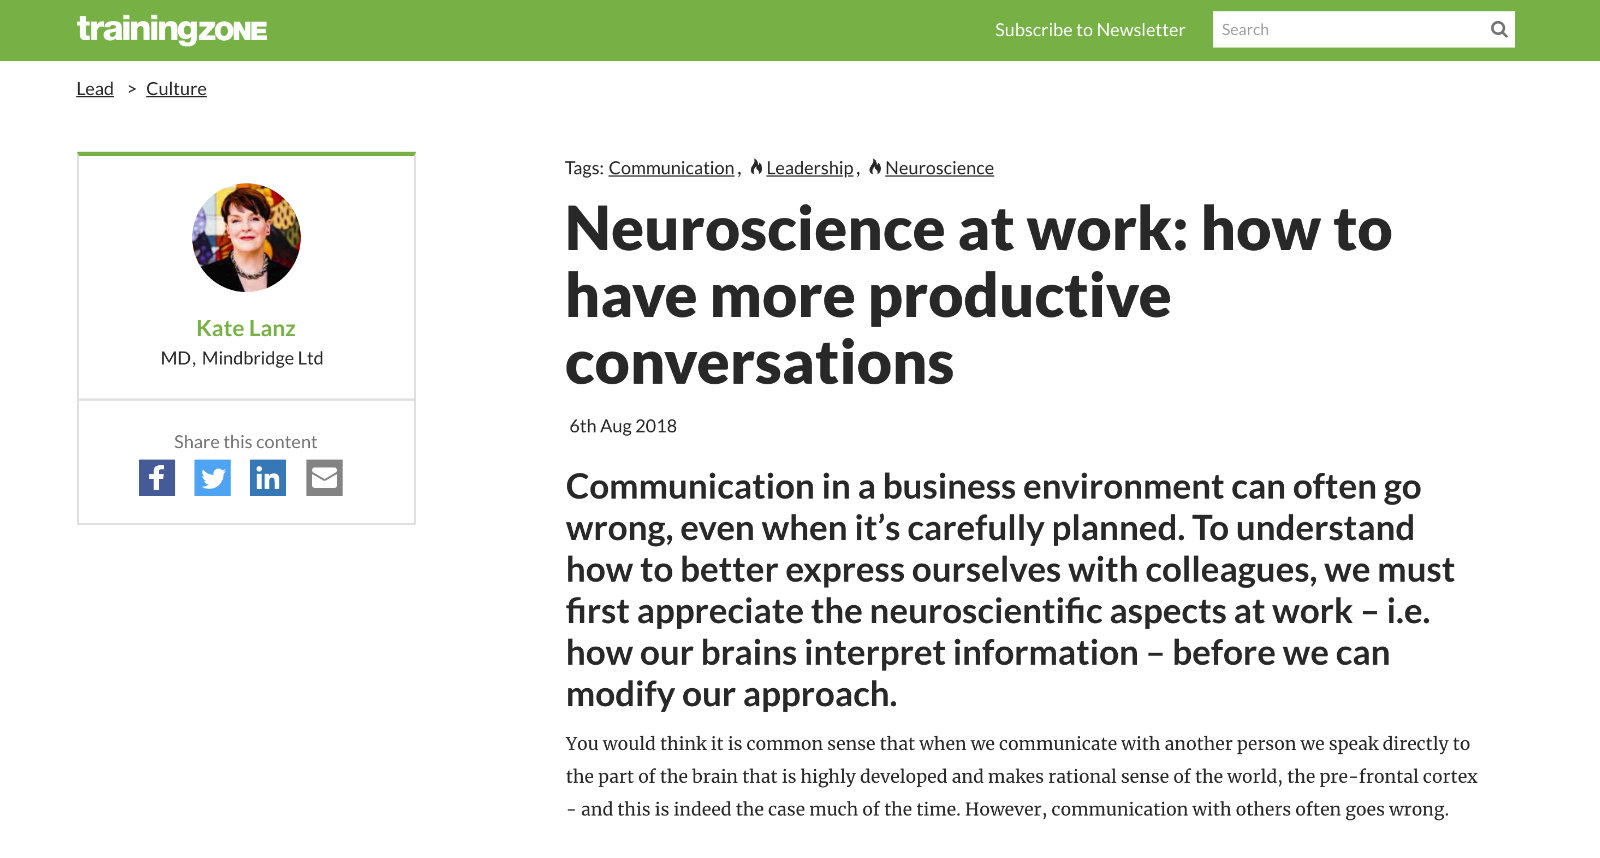 Neuroscience at work: how to have more positive conversations article in TrainingZone